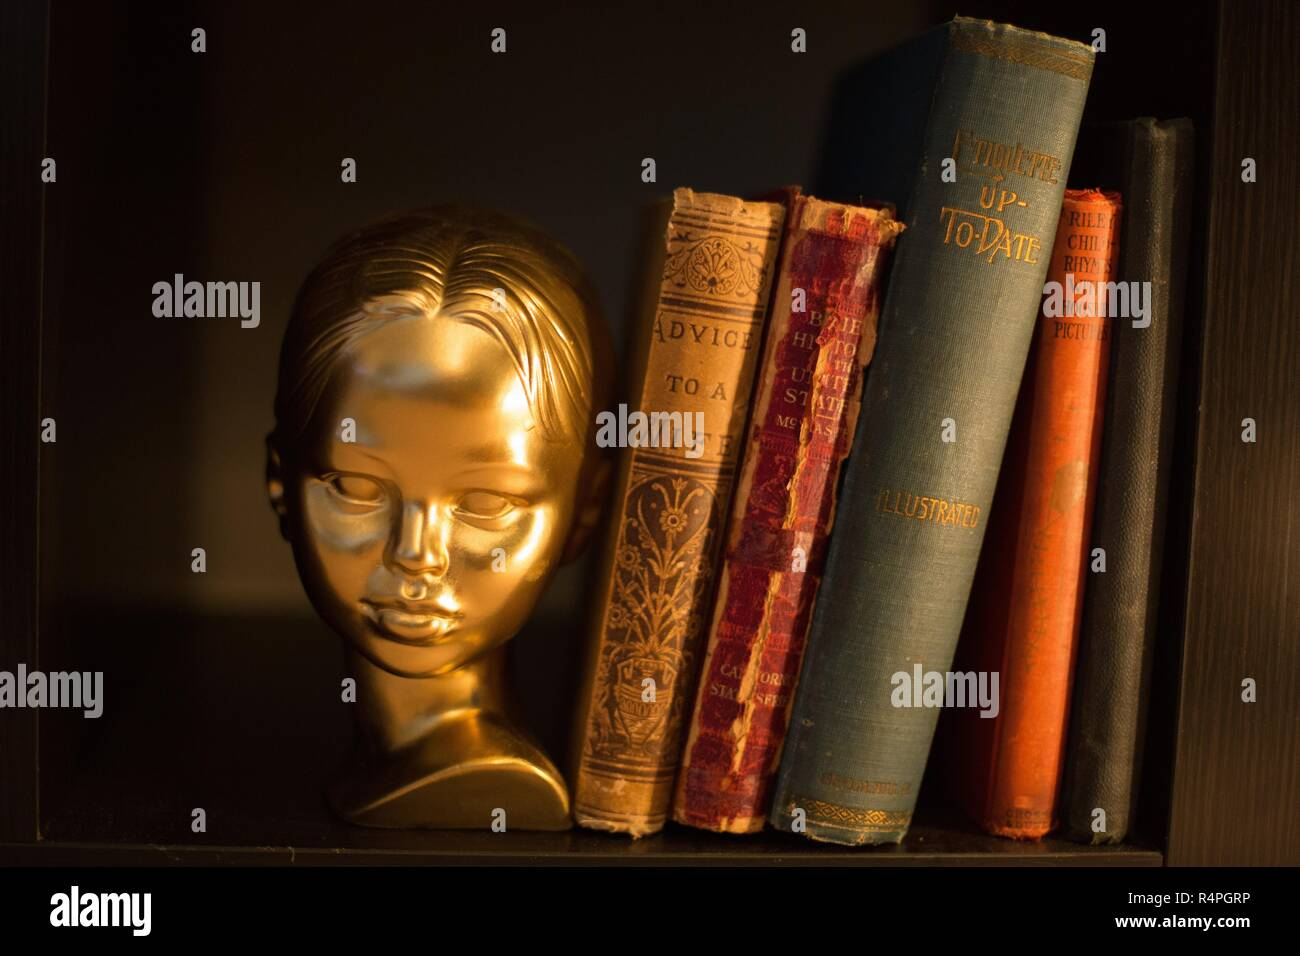 A gold bust of a girl next to old-fashioned books about etiquette and marriage. Stock Photo